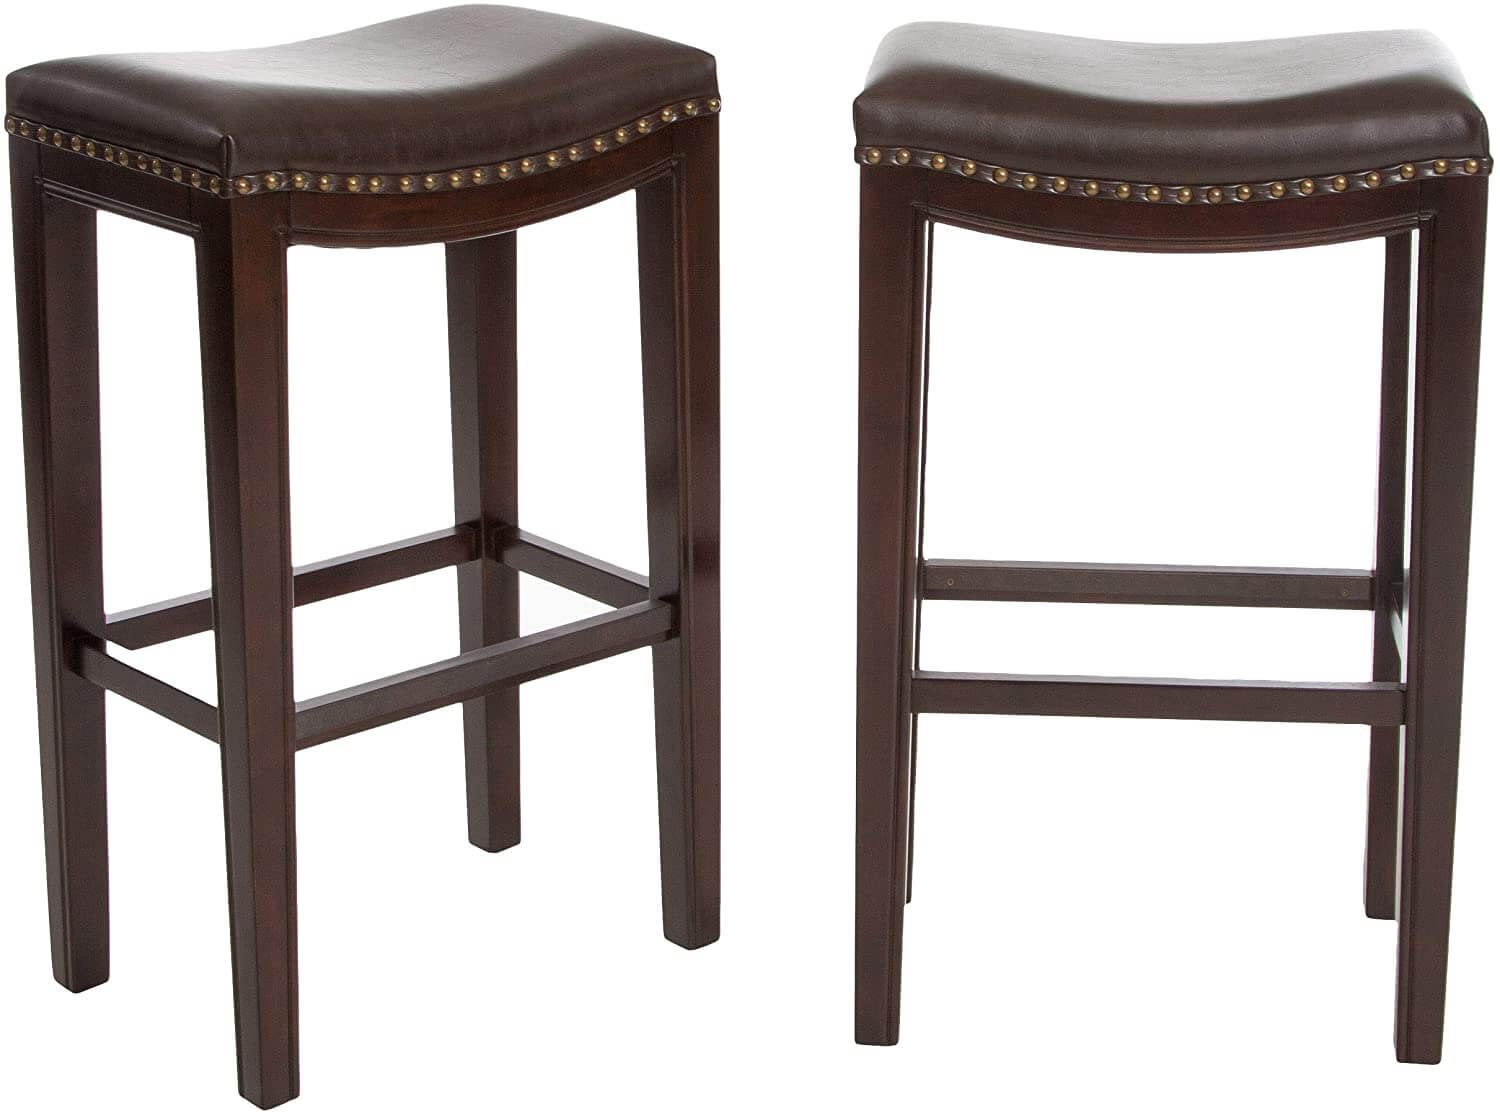 2-Pcs Set Backless Modern Bar Stools in Brown